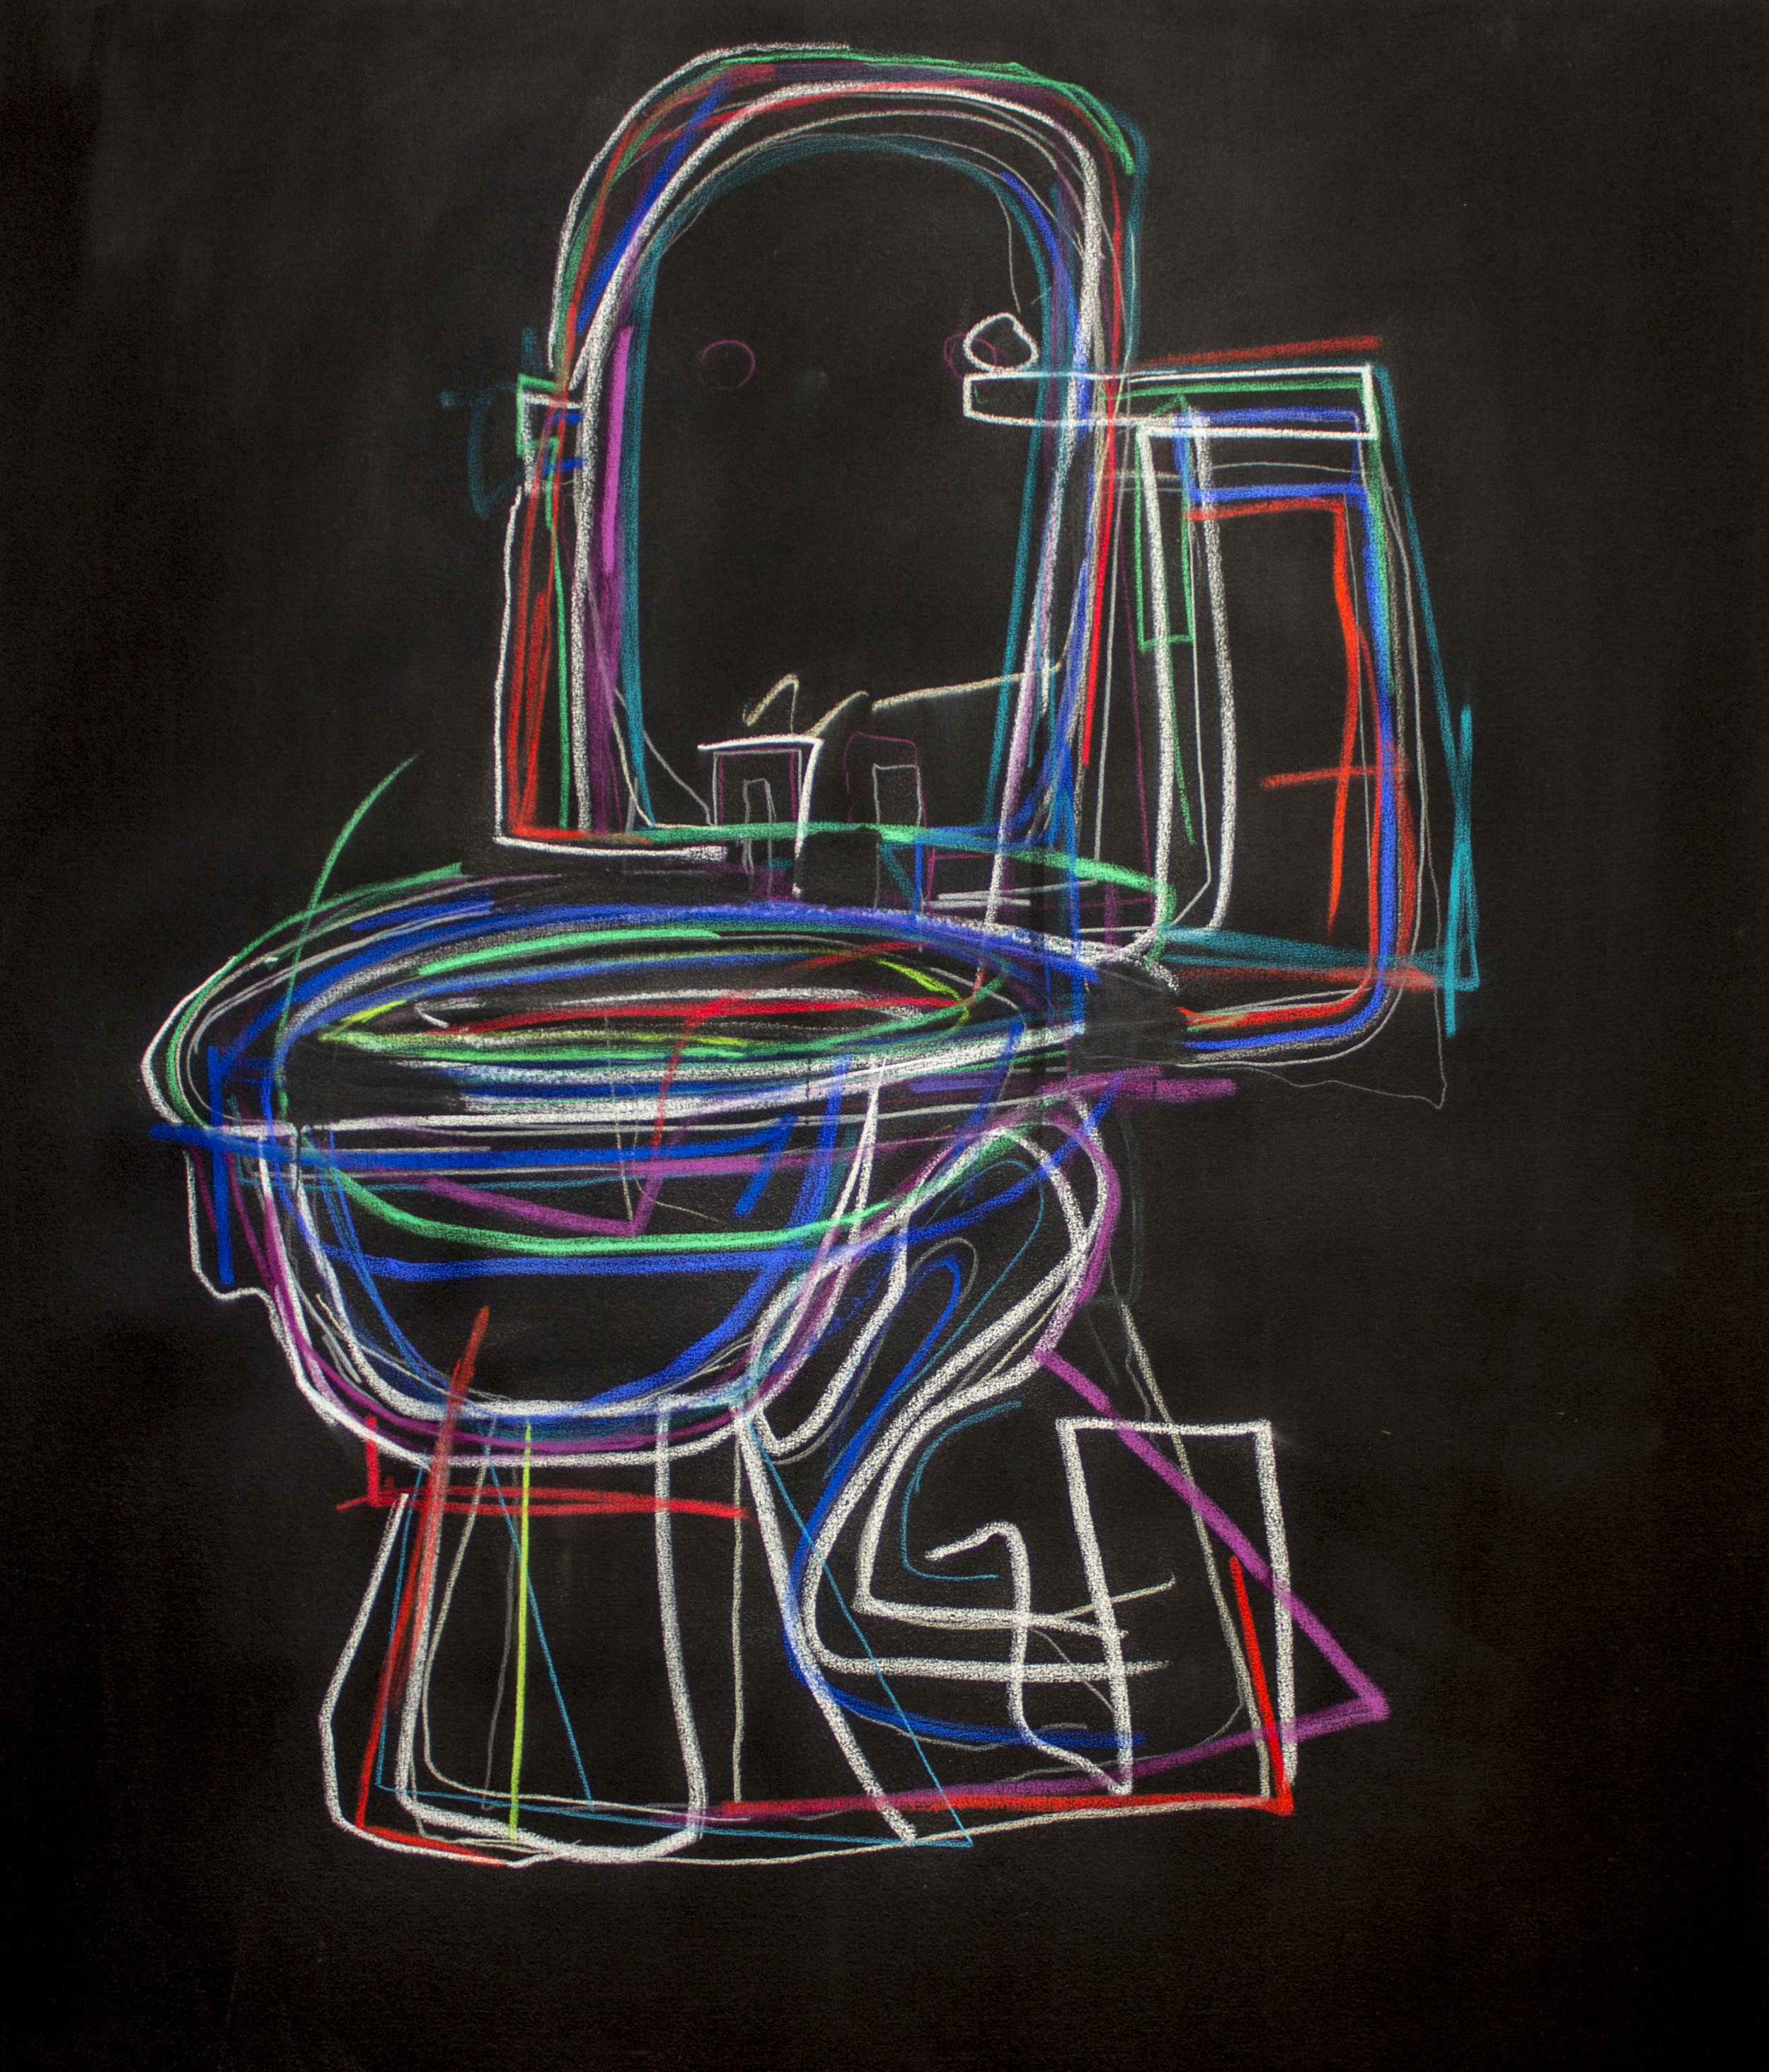 electric chair toilet